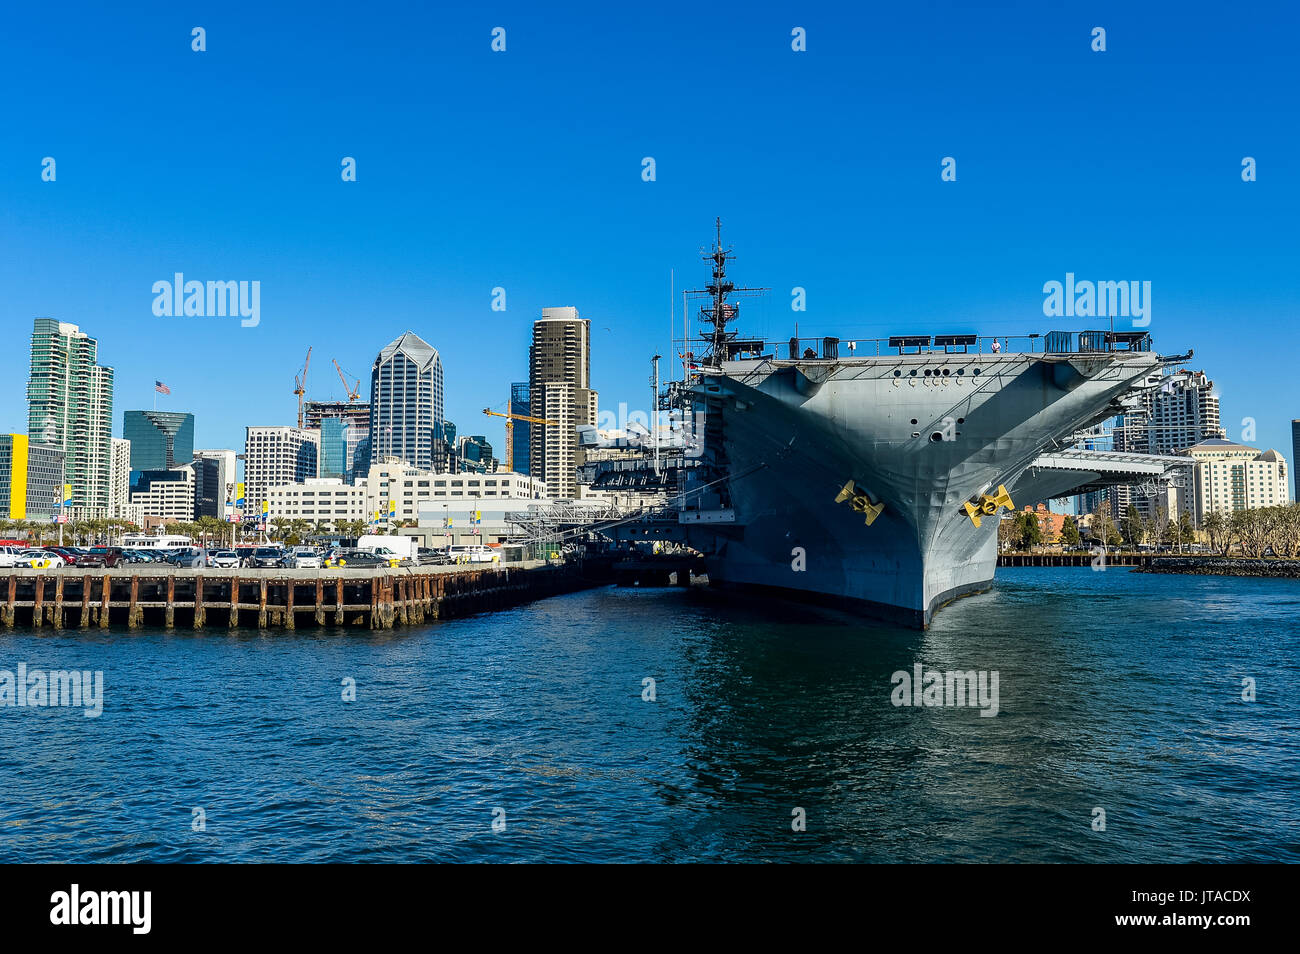 Skyline of San Diego with USS Midway, Harbour of San Diego, California, United States of America, North America - Stock Image